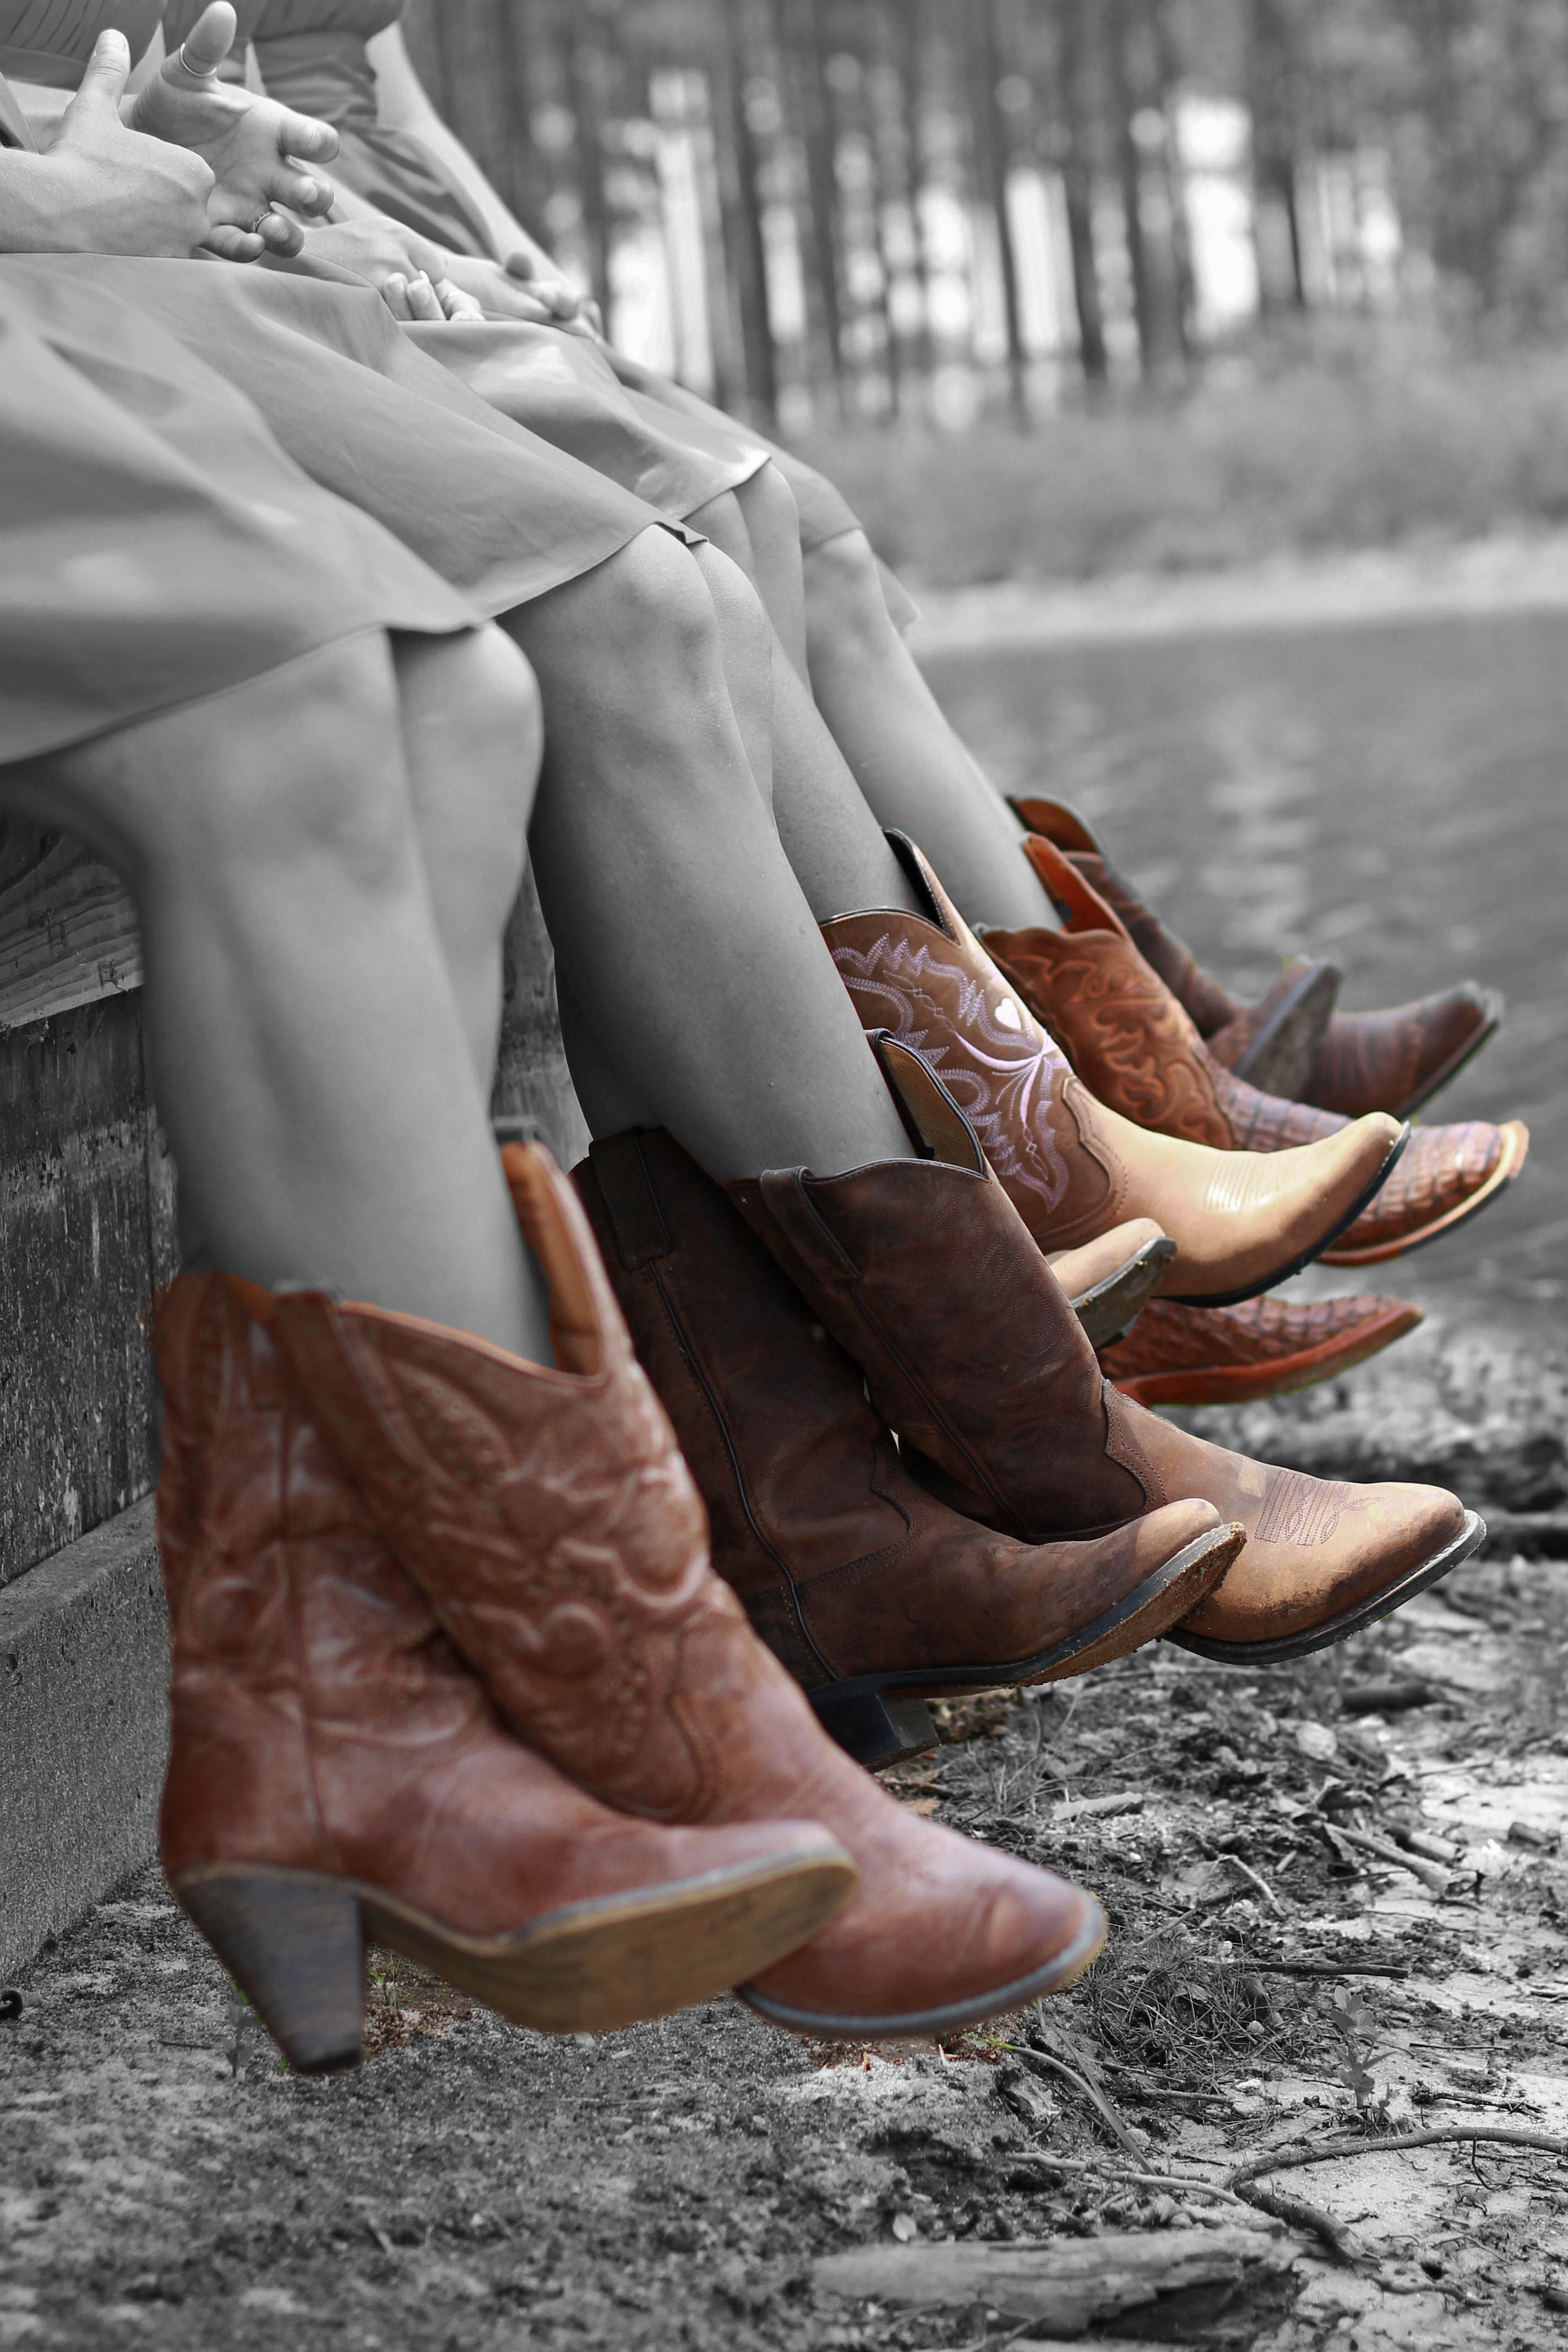 Country Shirt Country Music Farm Living Cowboy Boots For Life Rodeo Country Girl Boots Over Heels Southern Style Country Living